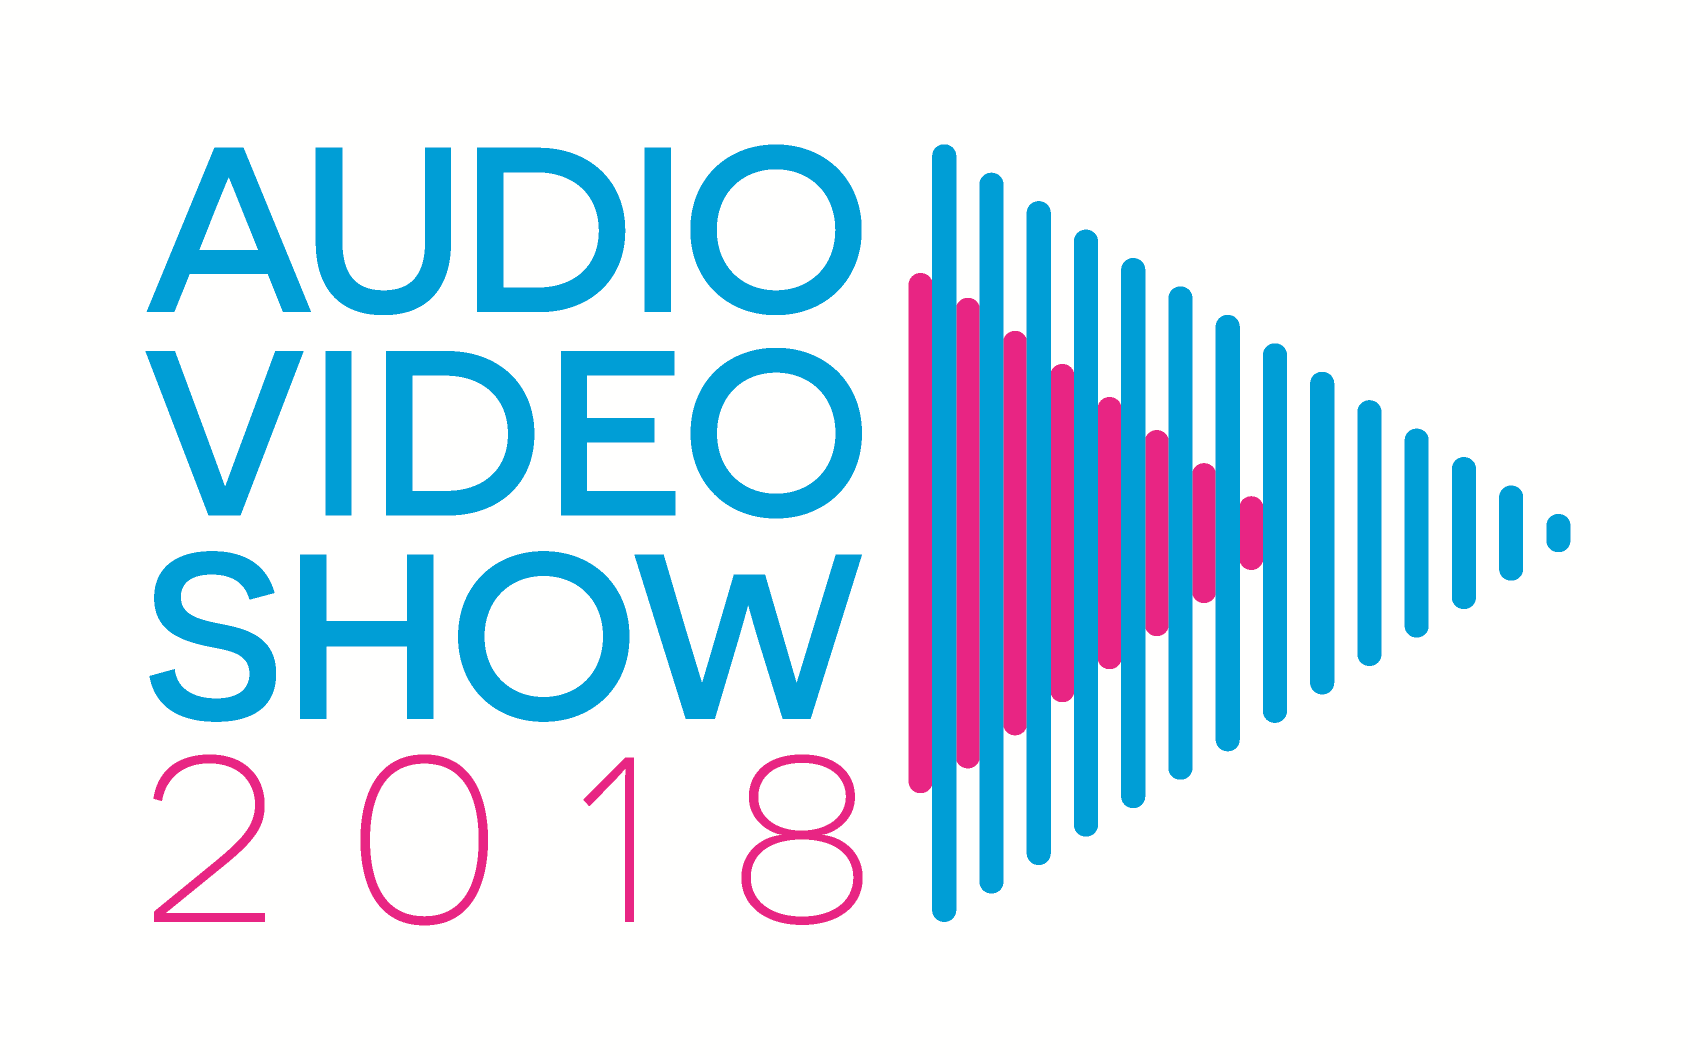 Audio Video Show 2018 - Relacja earmania.pl